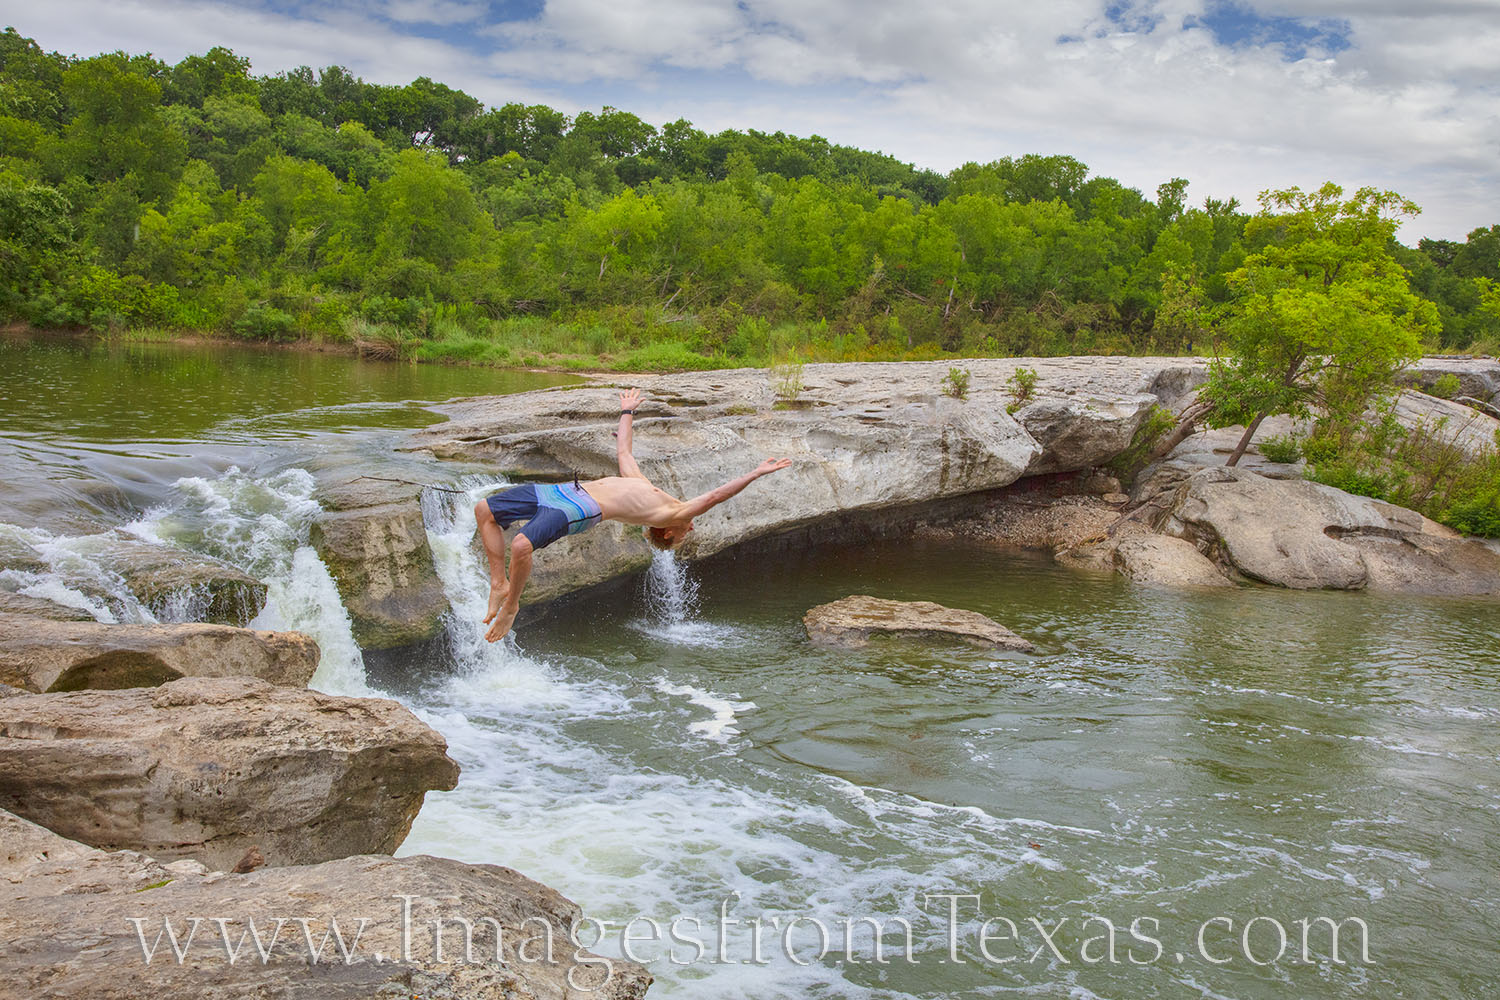 mckinney falls state park, texas state parks, backflip, upper falls, east austin, photo